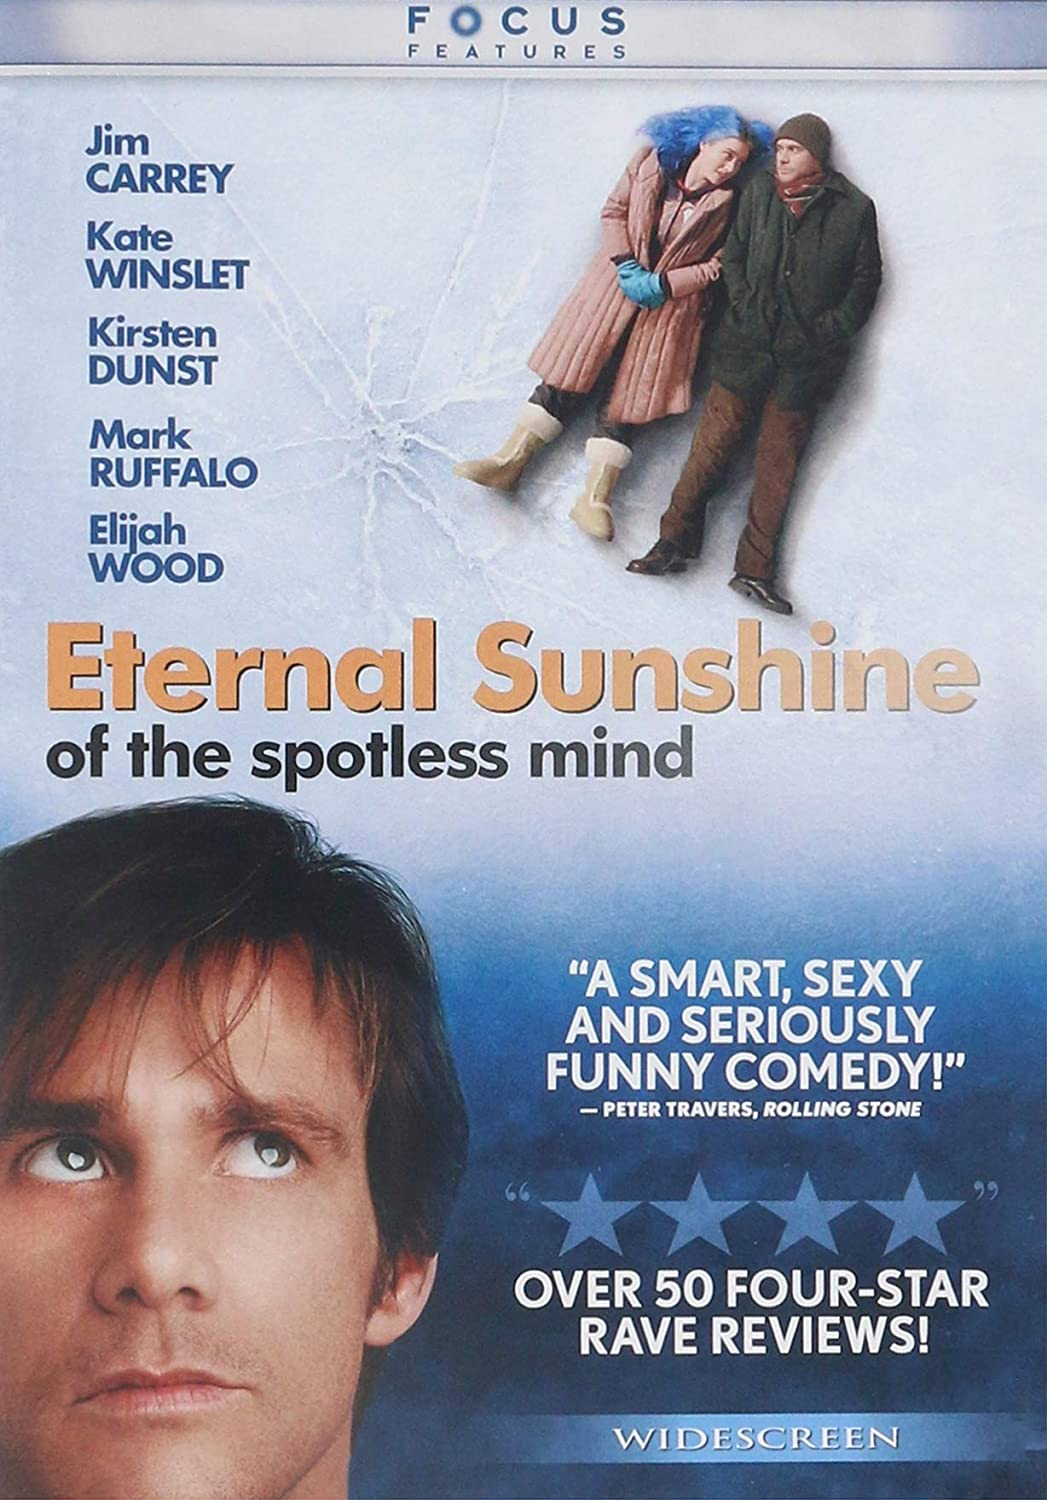 Amazon.com: Eternal Sunshine Of The Spotless Mind: Jim Carrey, Kate Winslet, Kirsten Dunst, Mark Ruffalo, Elijah Wood, Tom Wilkinson, Jane Adams, David Cross, Deirdre O'Connell, Debbon Ayer, Michel Gondry, Steve Golin, Anthony